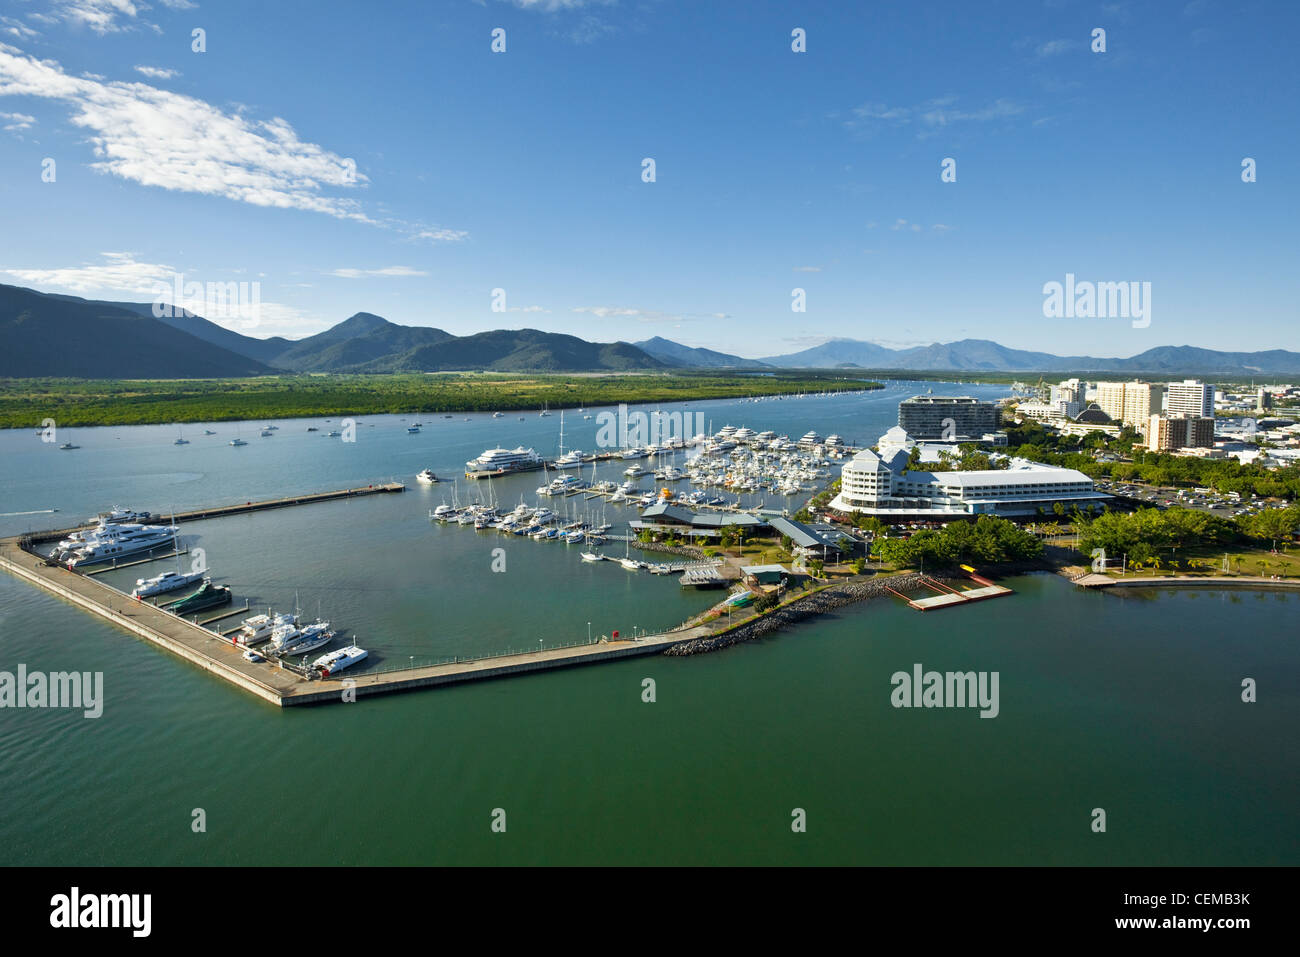 Aerial view of Marlin Marina with Trinity Inlet in background. Cairns, Queensland, Australia - Stock Image